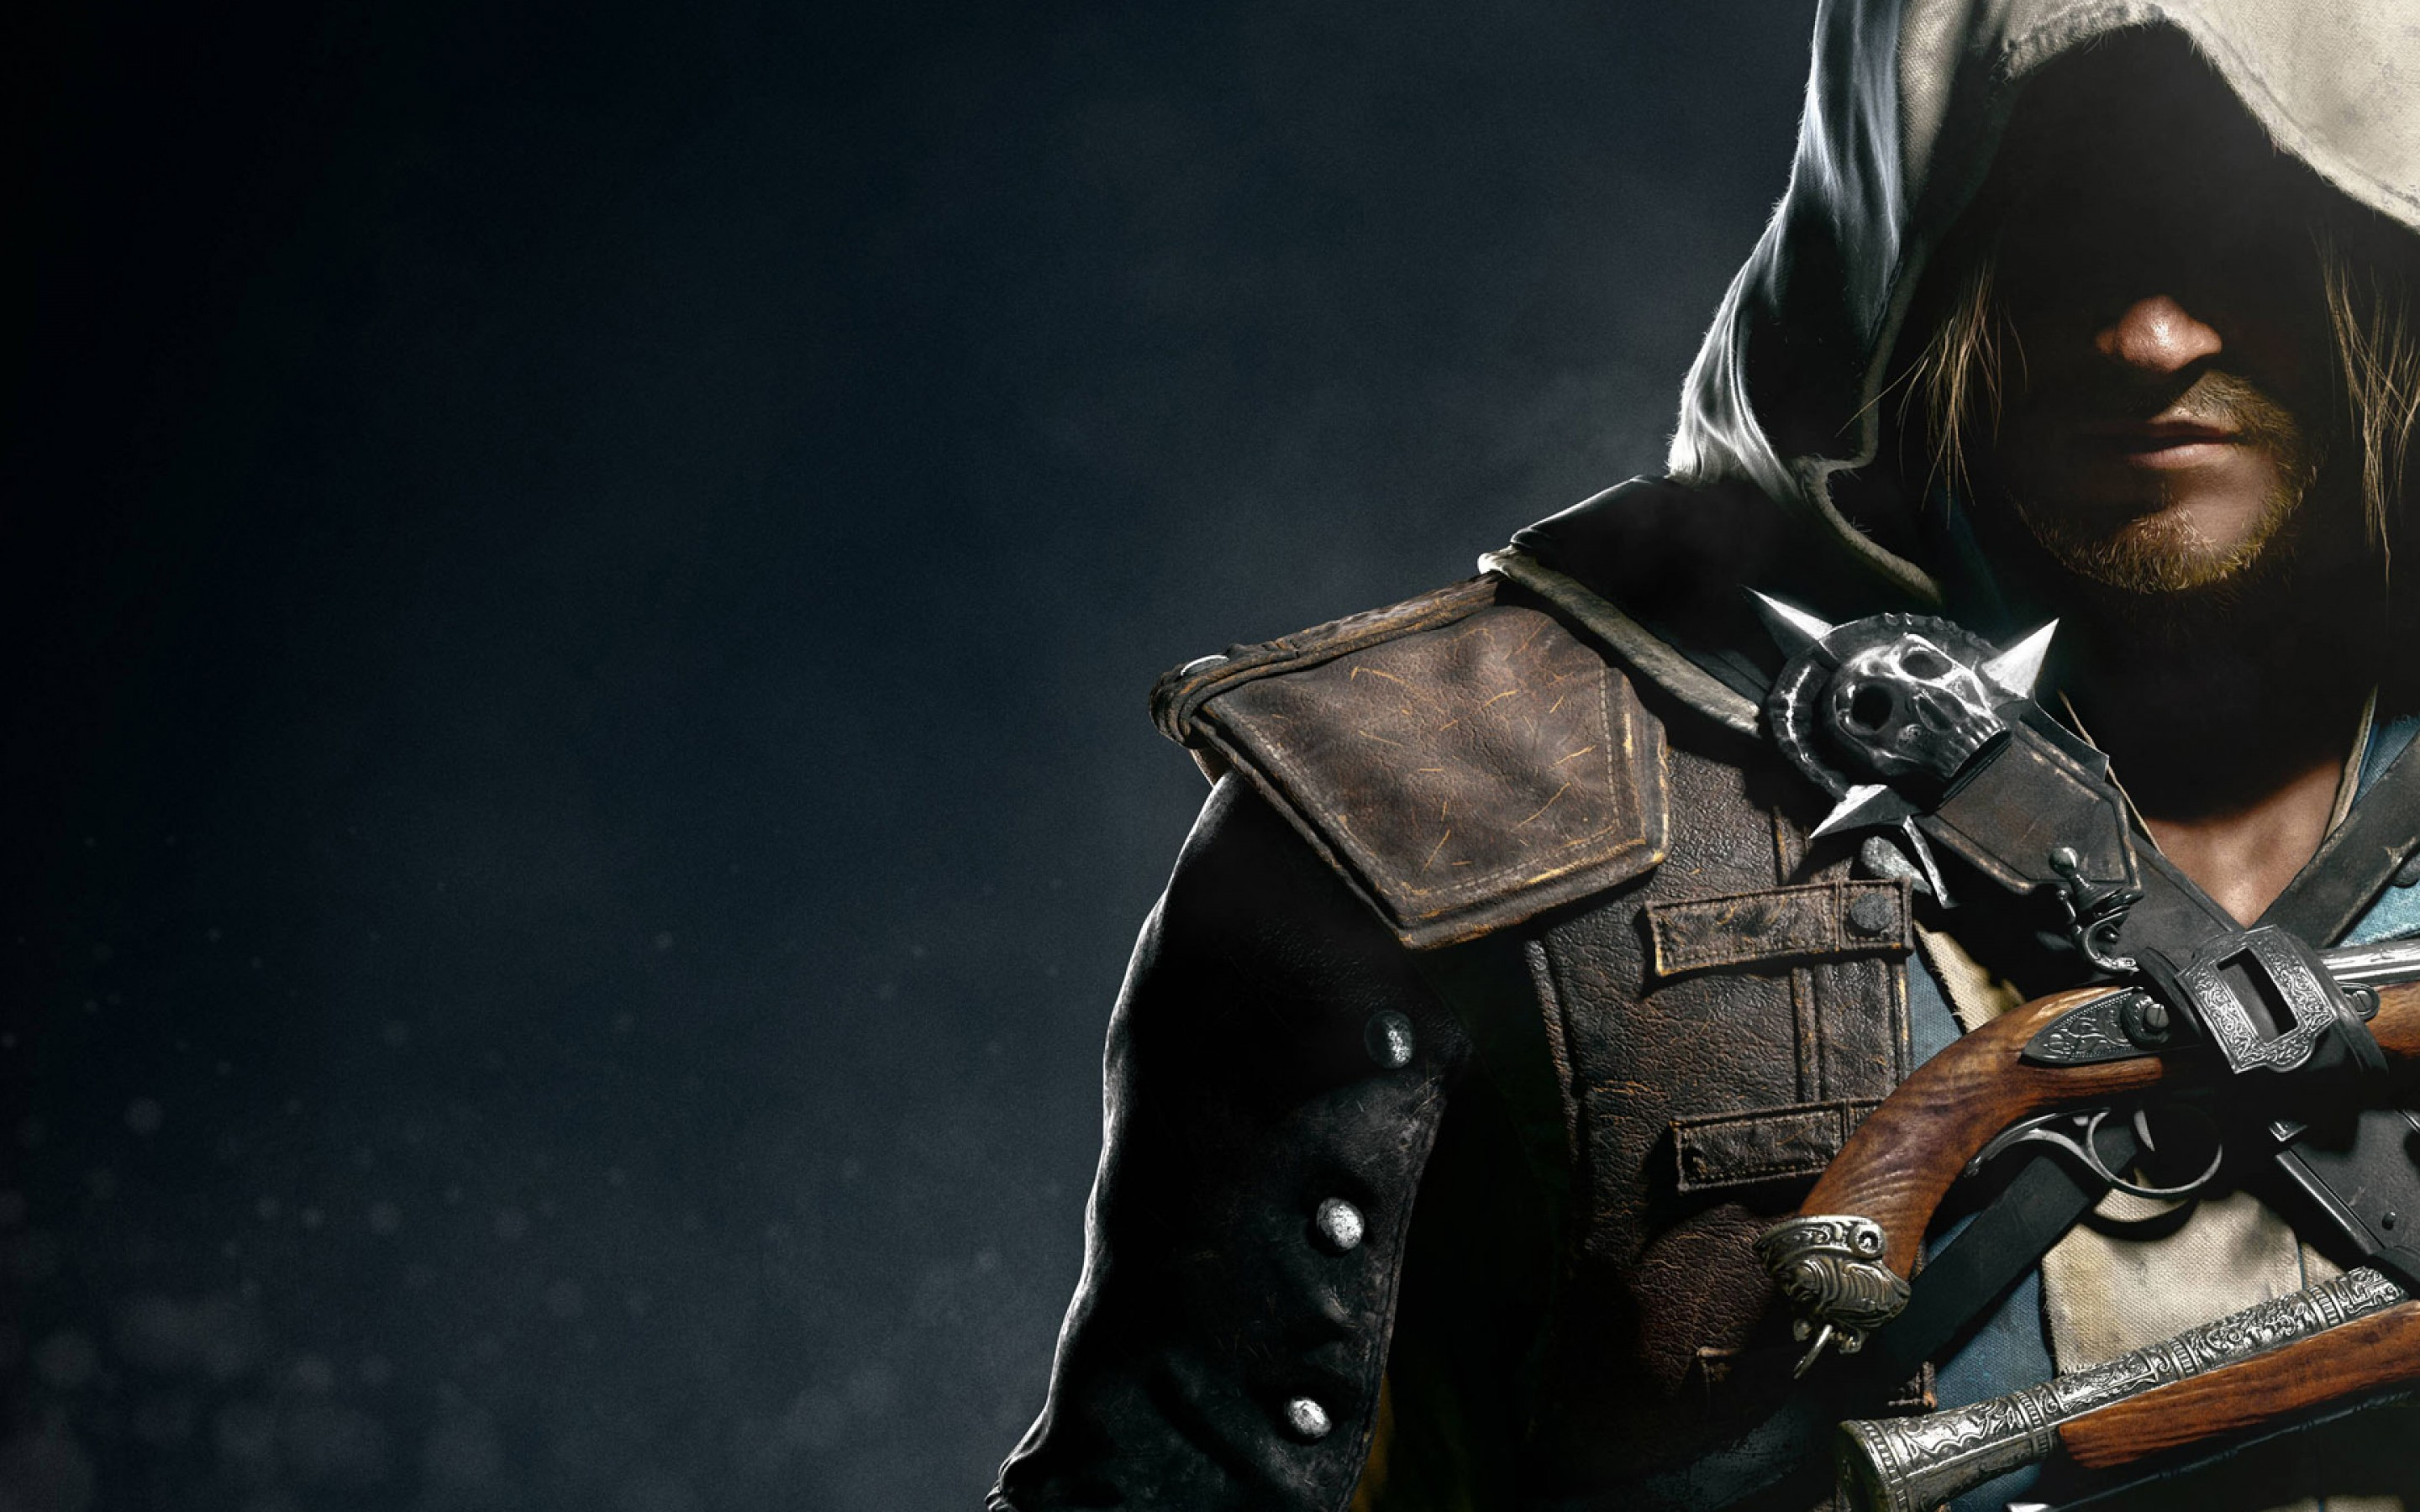 Image from http://www hdwallpapers in/walls/assassins_creed_rogue